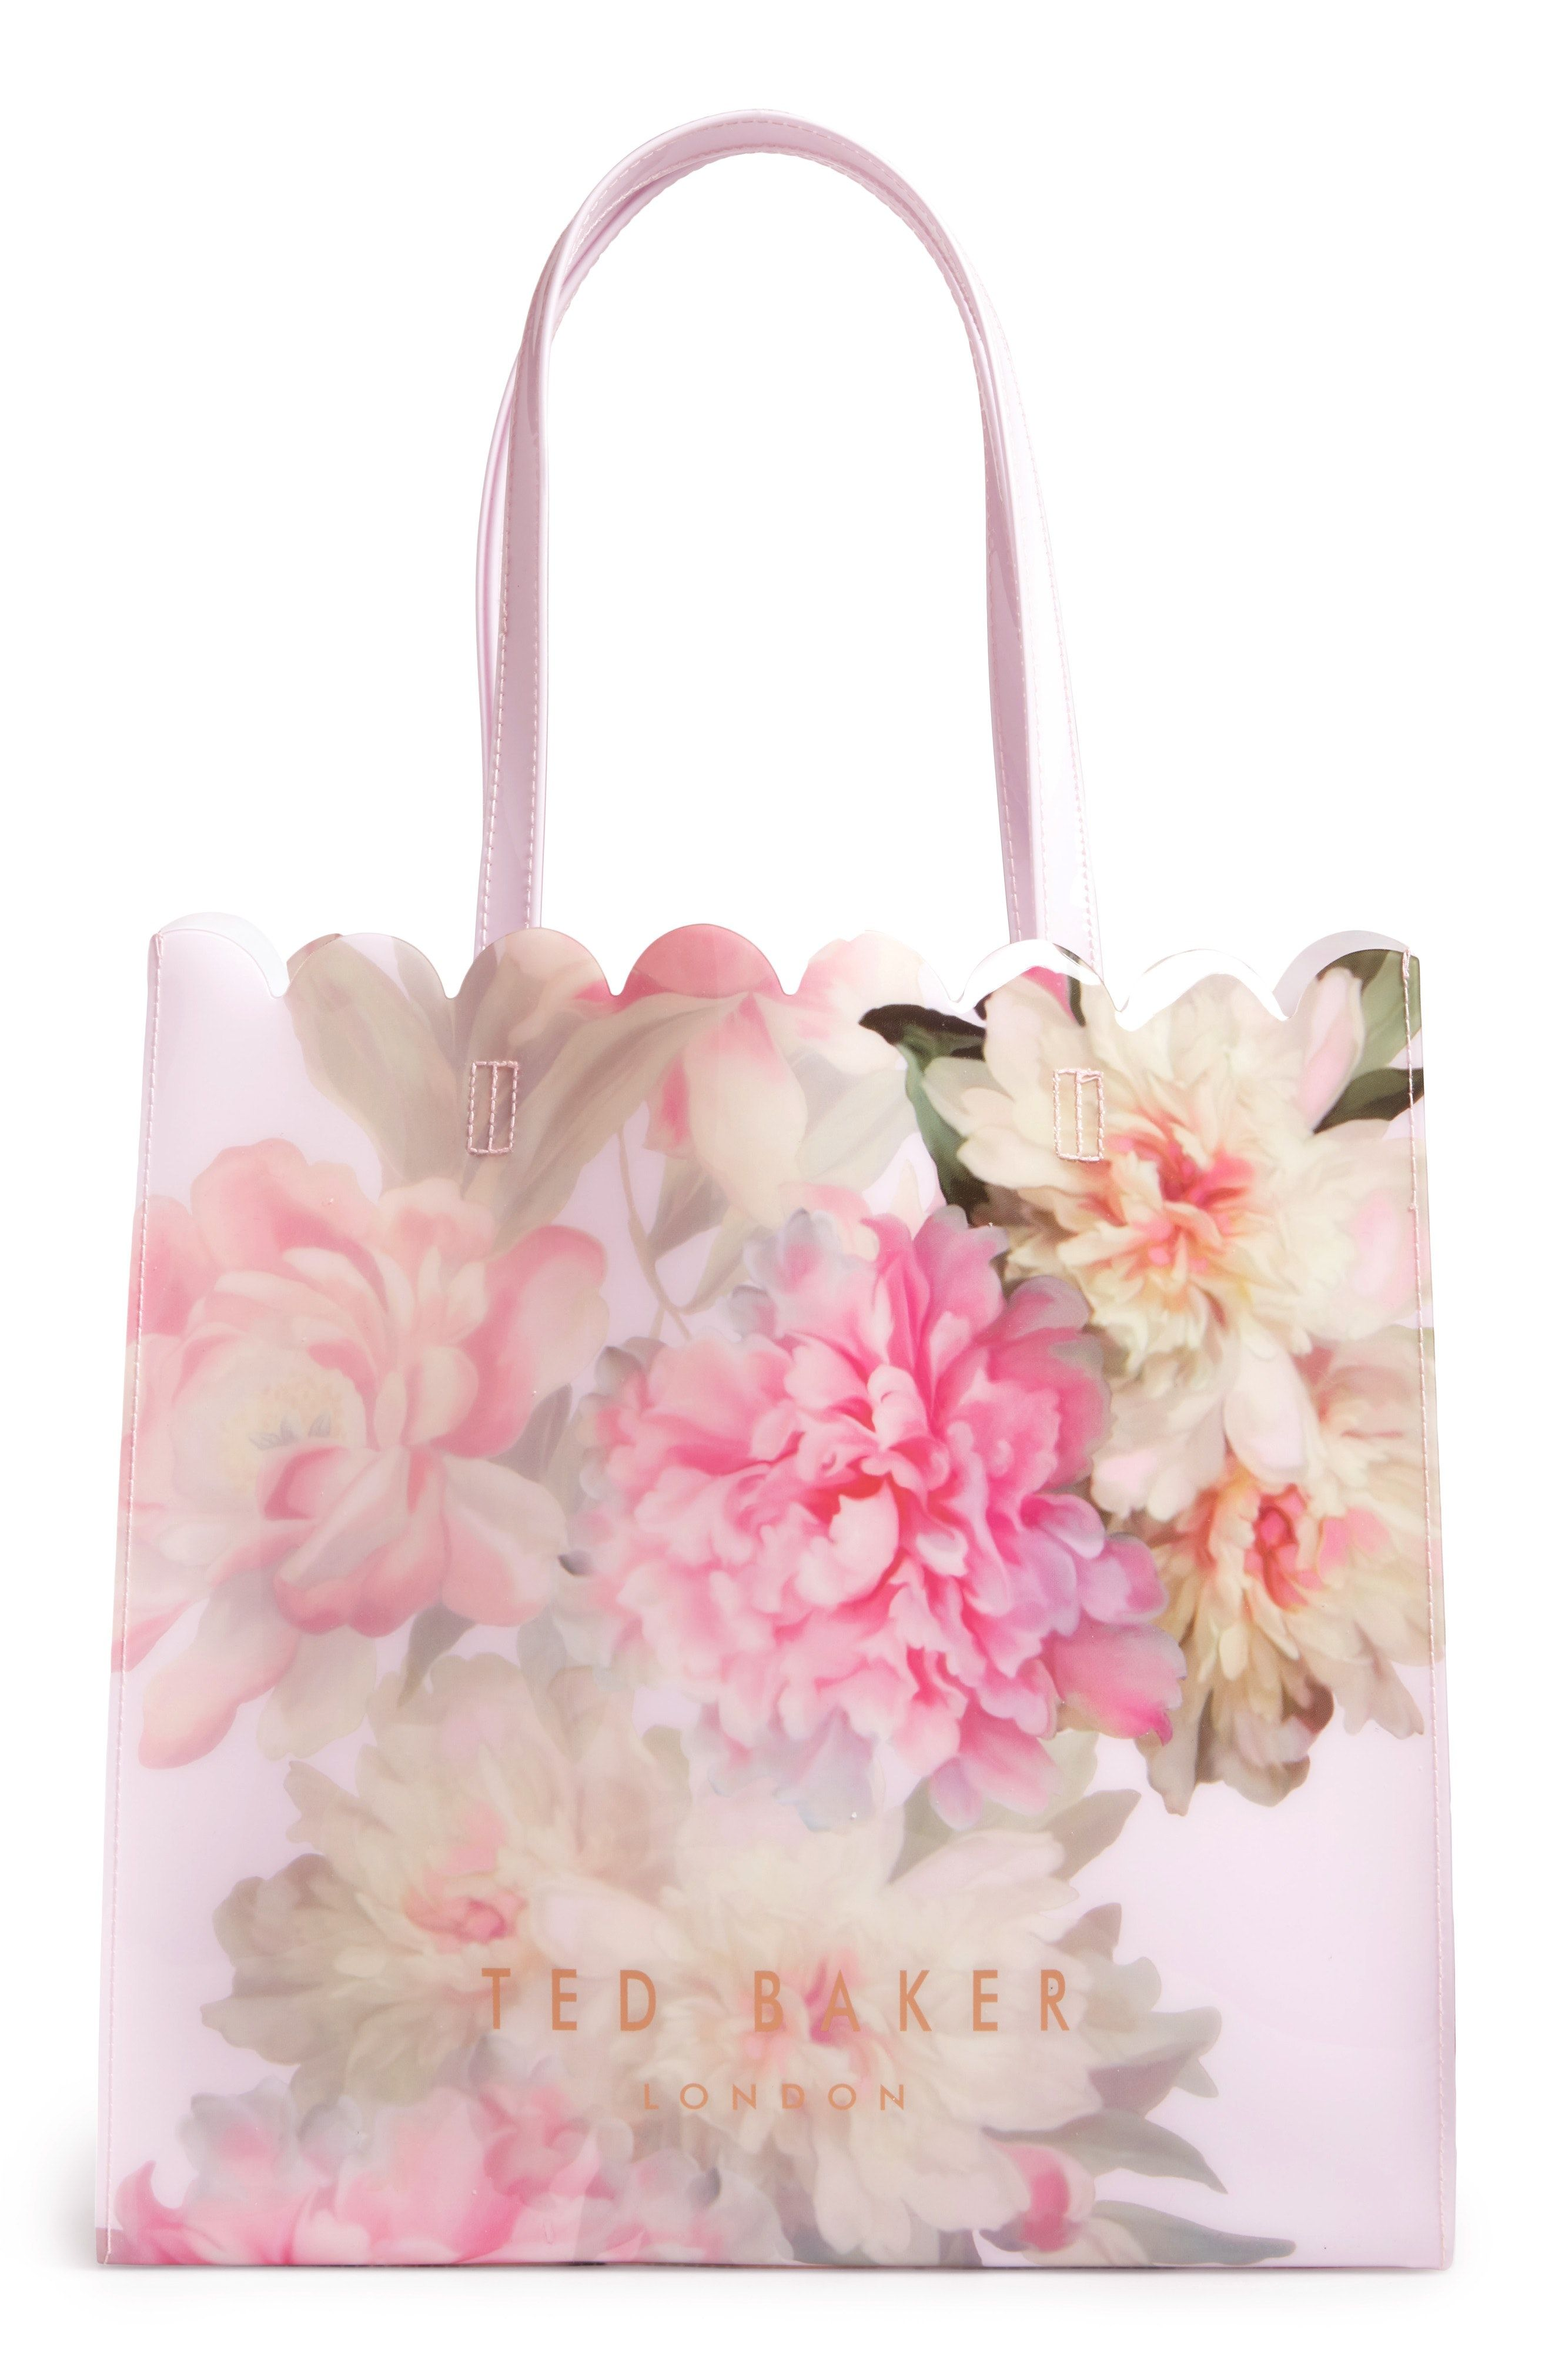 5080af235b7c New Ted Baker London Painted Posie Large Icon Bag fashion online.    59   shop.seehandbags